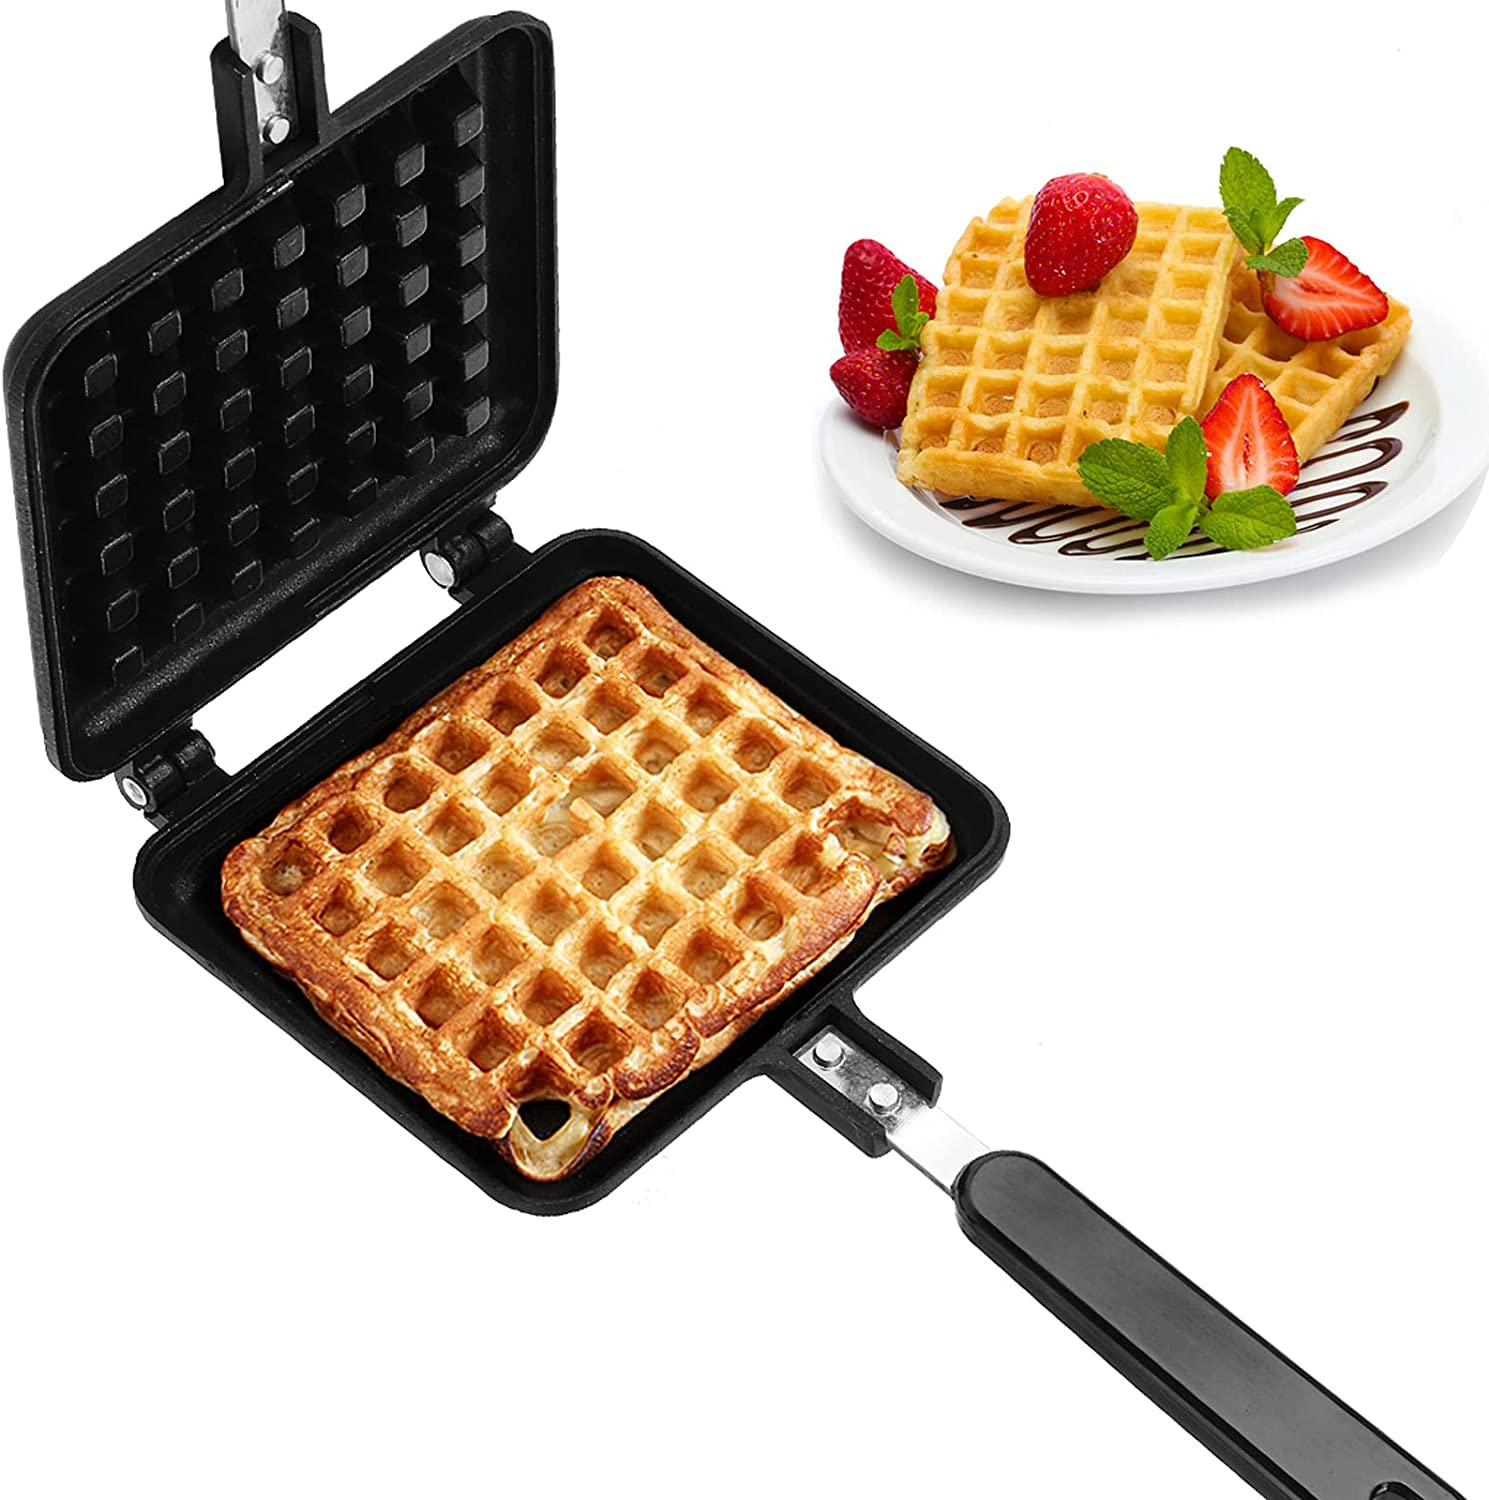 Dicunoy Waffle Iron, Nonstick Waffle Maker Pan, Stove Top Iron Waffle Maker for Belgian Waffles Sandwich Toaster, Breakfast, 5.5